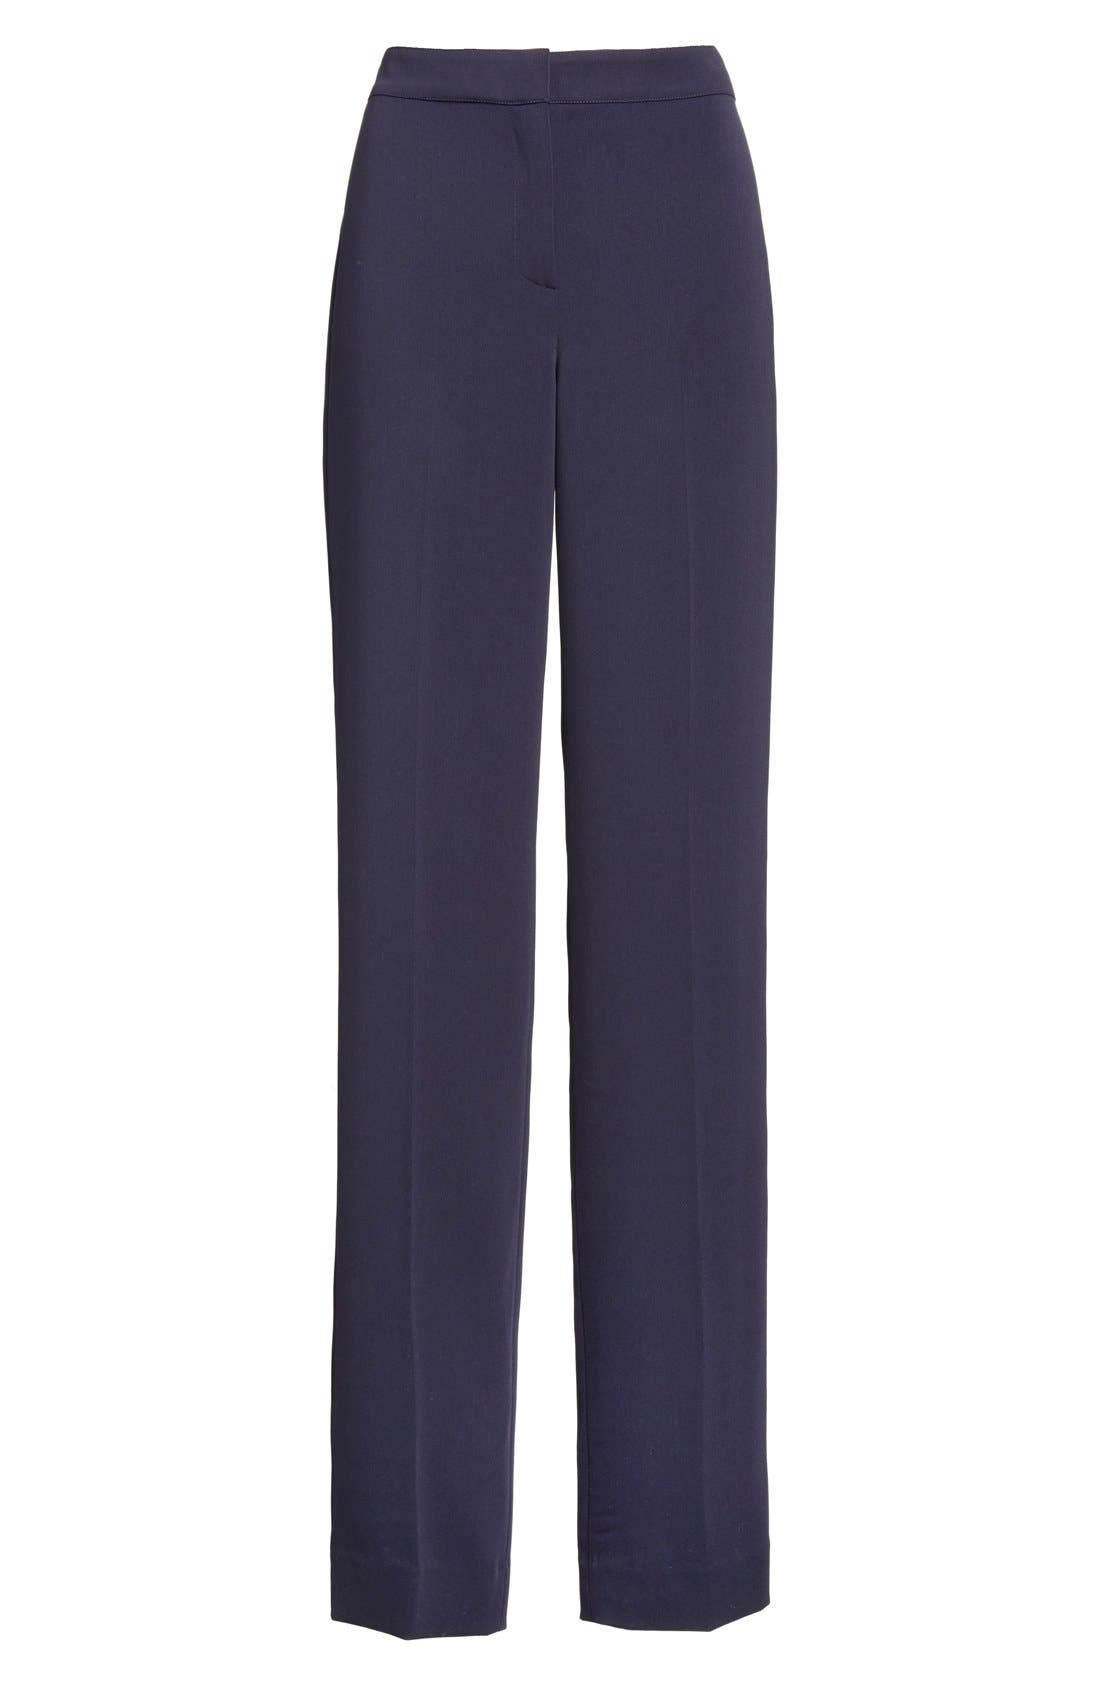 Diana Classic Cady Stretch Pants,                             Alternate thumbnail 7, color,                             NAVY